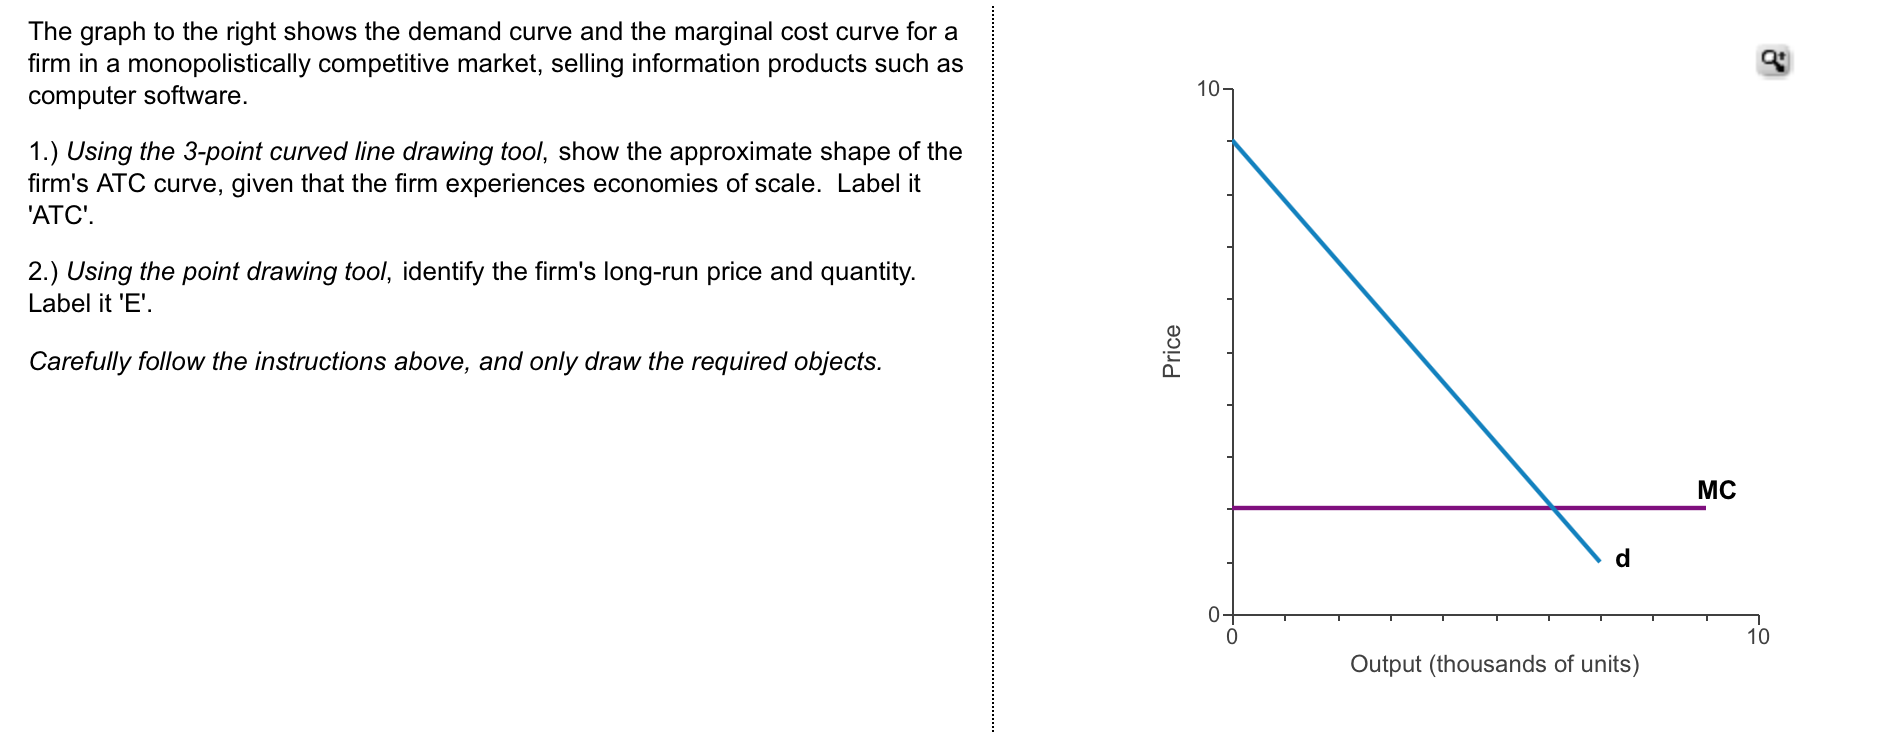 Marginal and Average Total Cost Curves